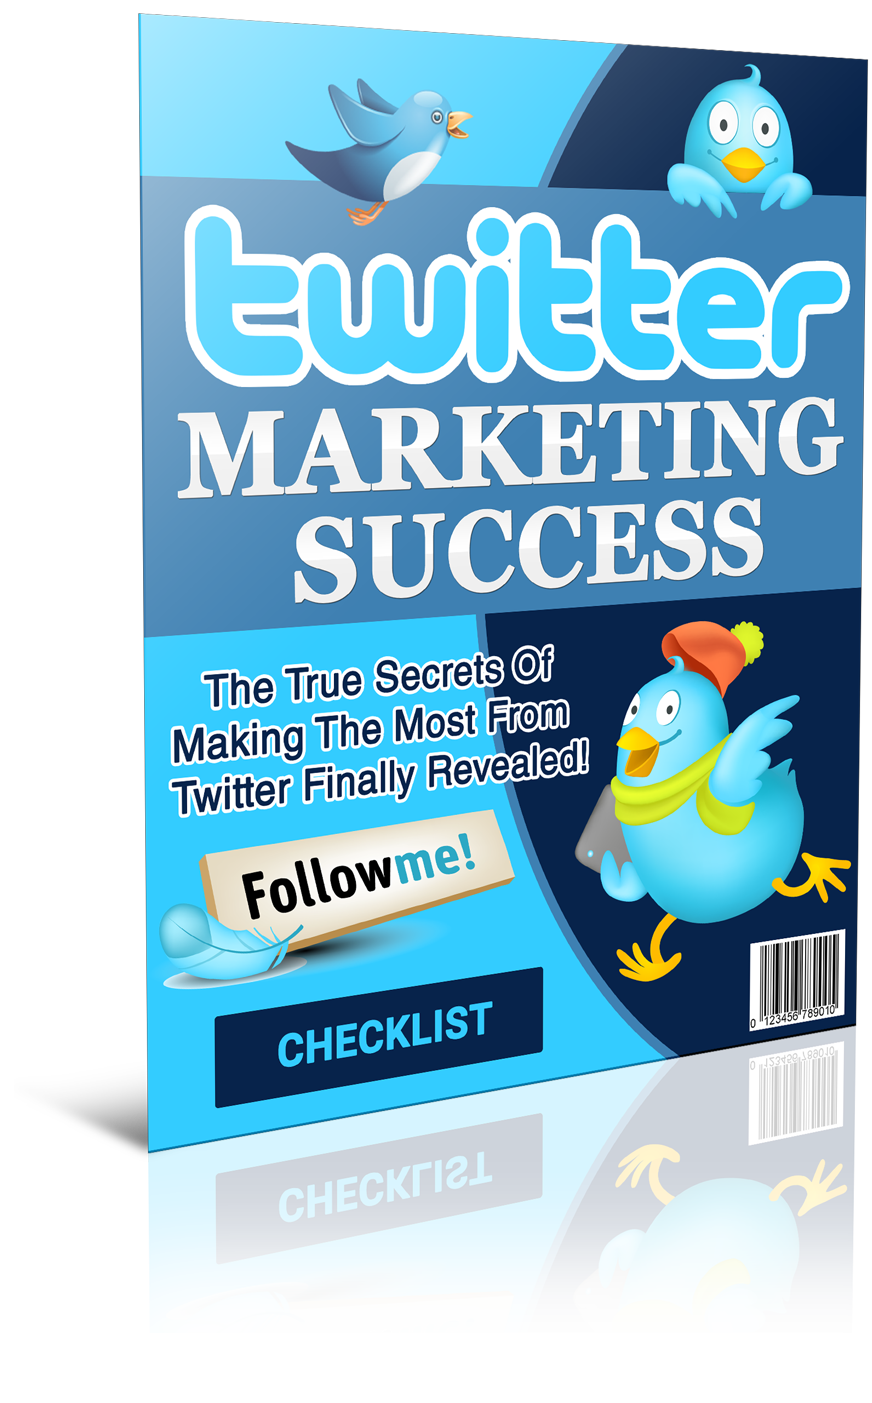 Twitter Marketing Success Checklist